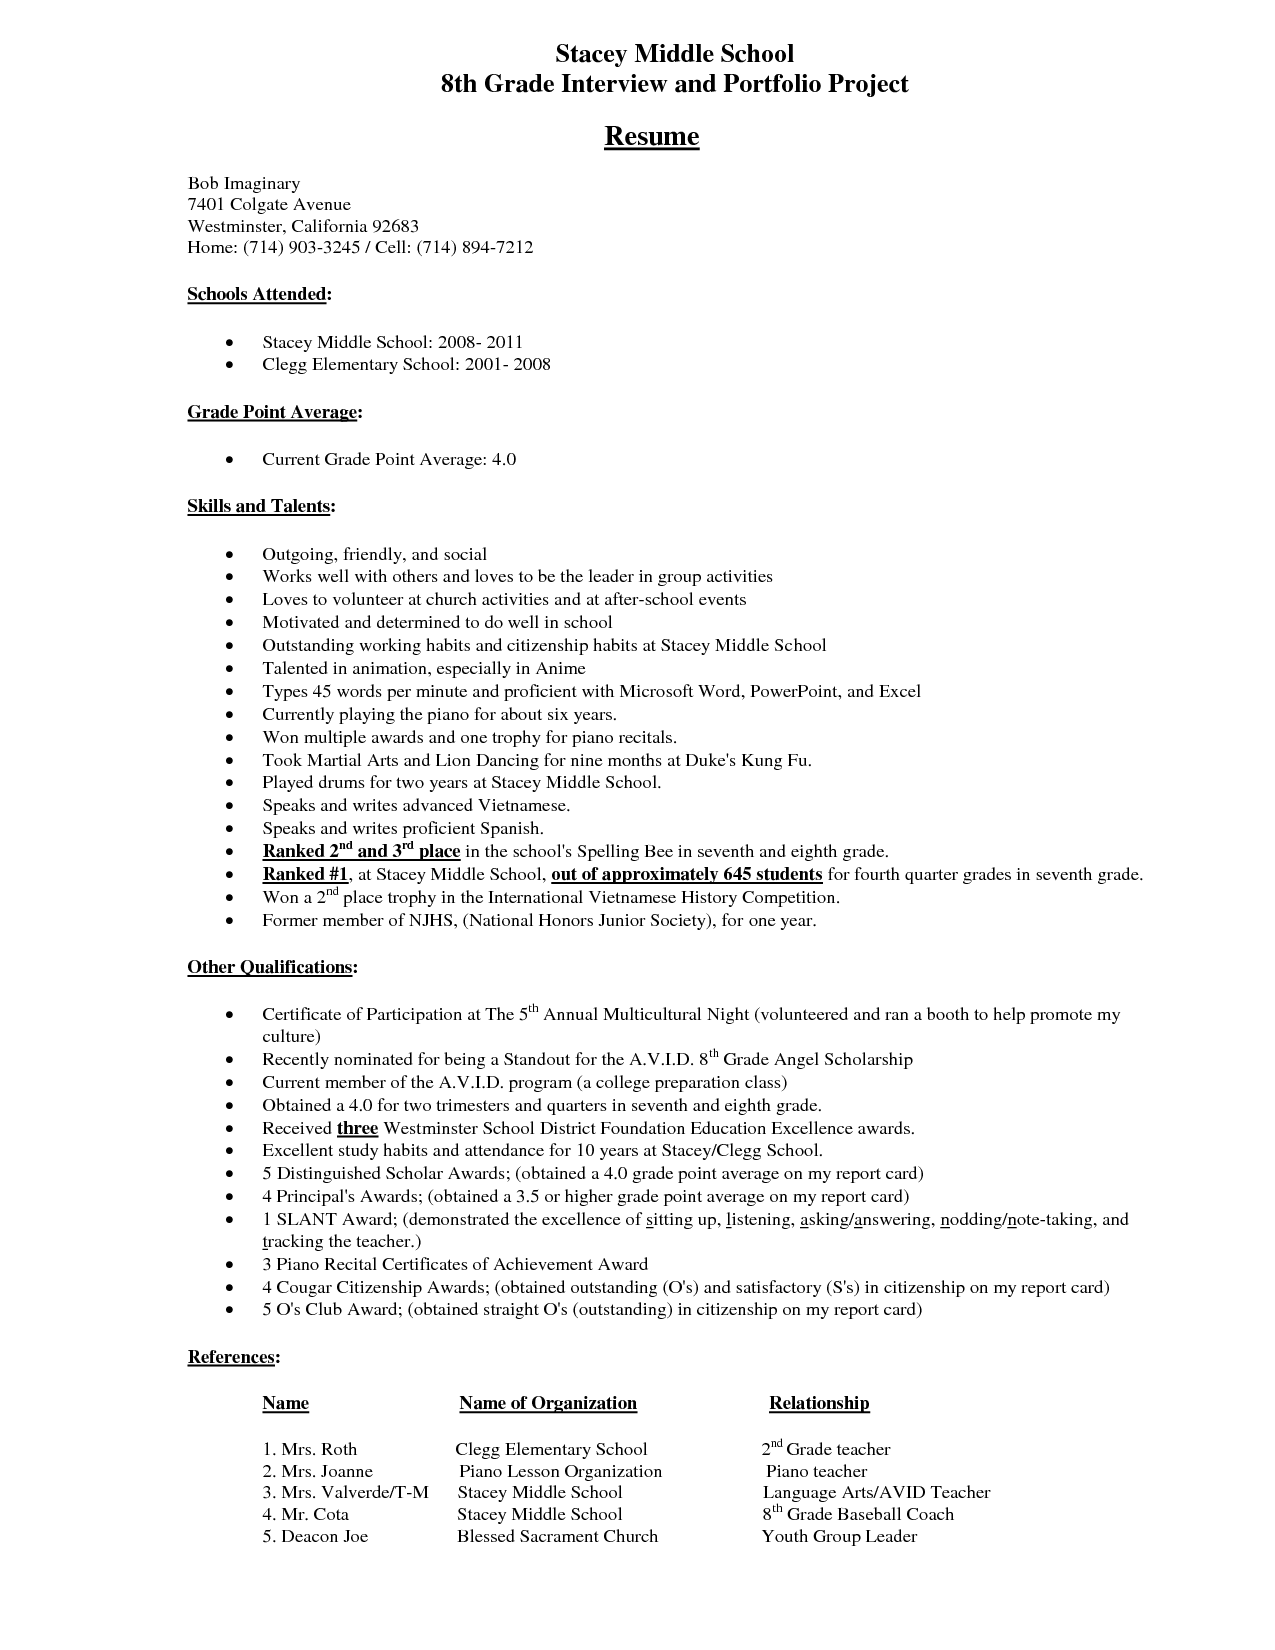 Middle School Resume Middle School Student Resume Example Stacey Middle